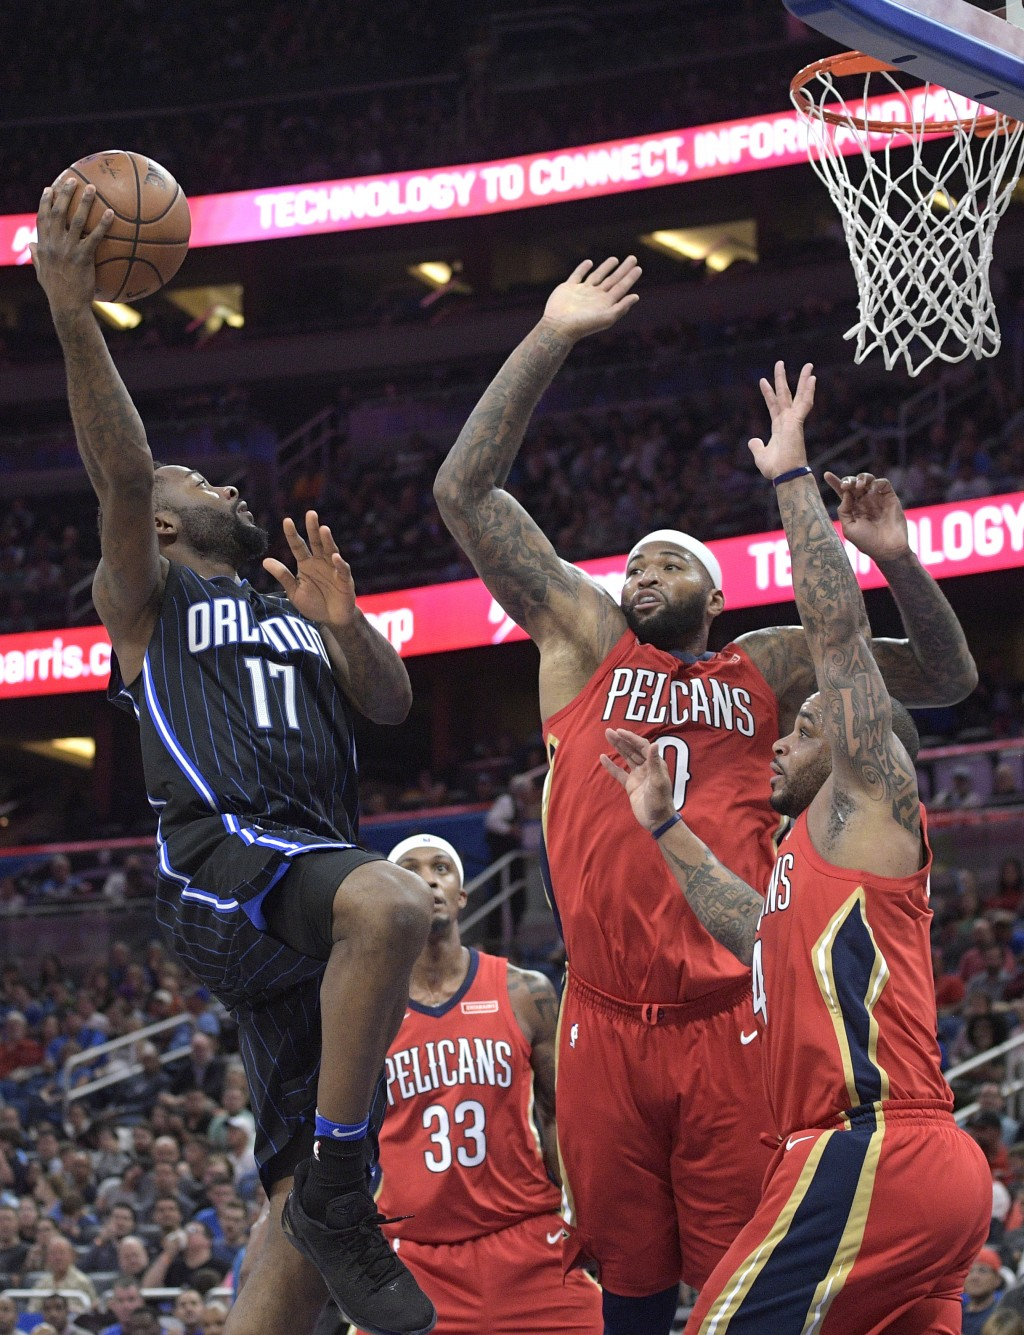 Orlando Magic forward Jonathon Simmons (17) goes up for a shot in front of New Orleans Pelicans forward Dante Cunningham (33), center DeMarcus Cousins...